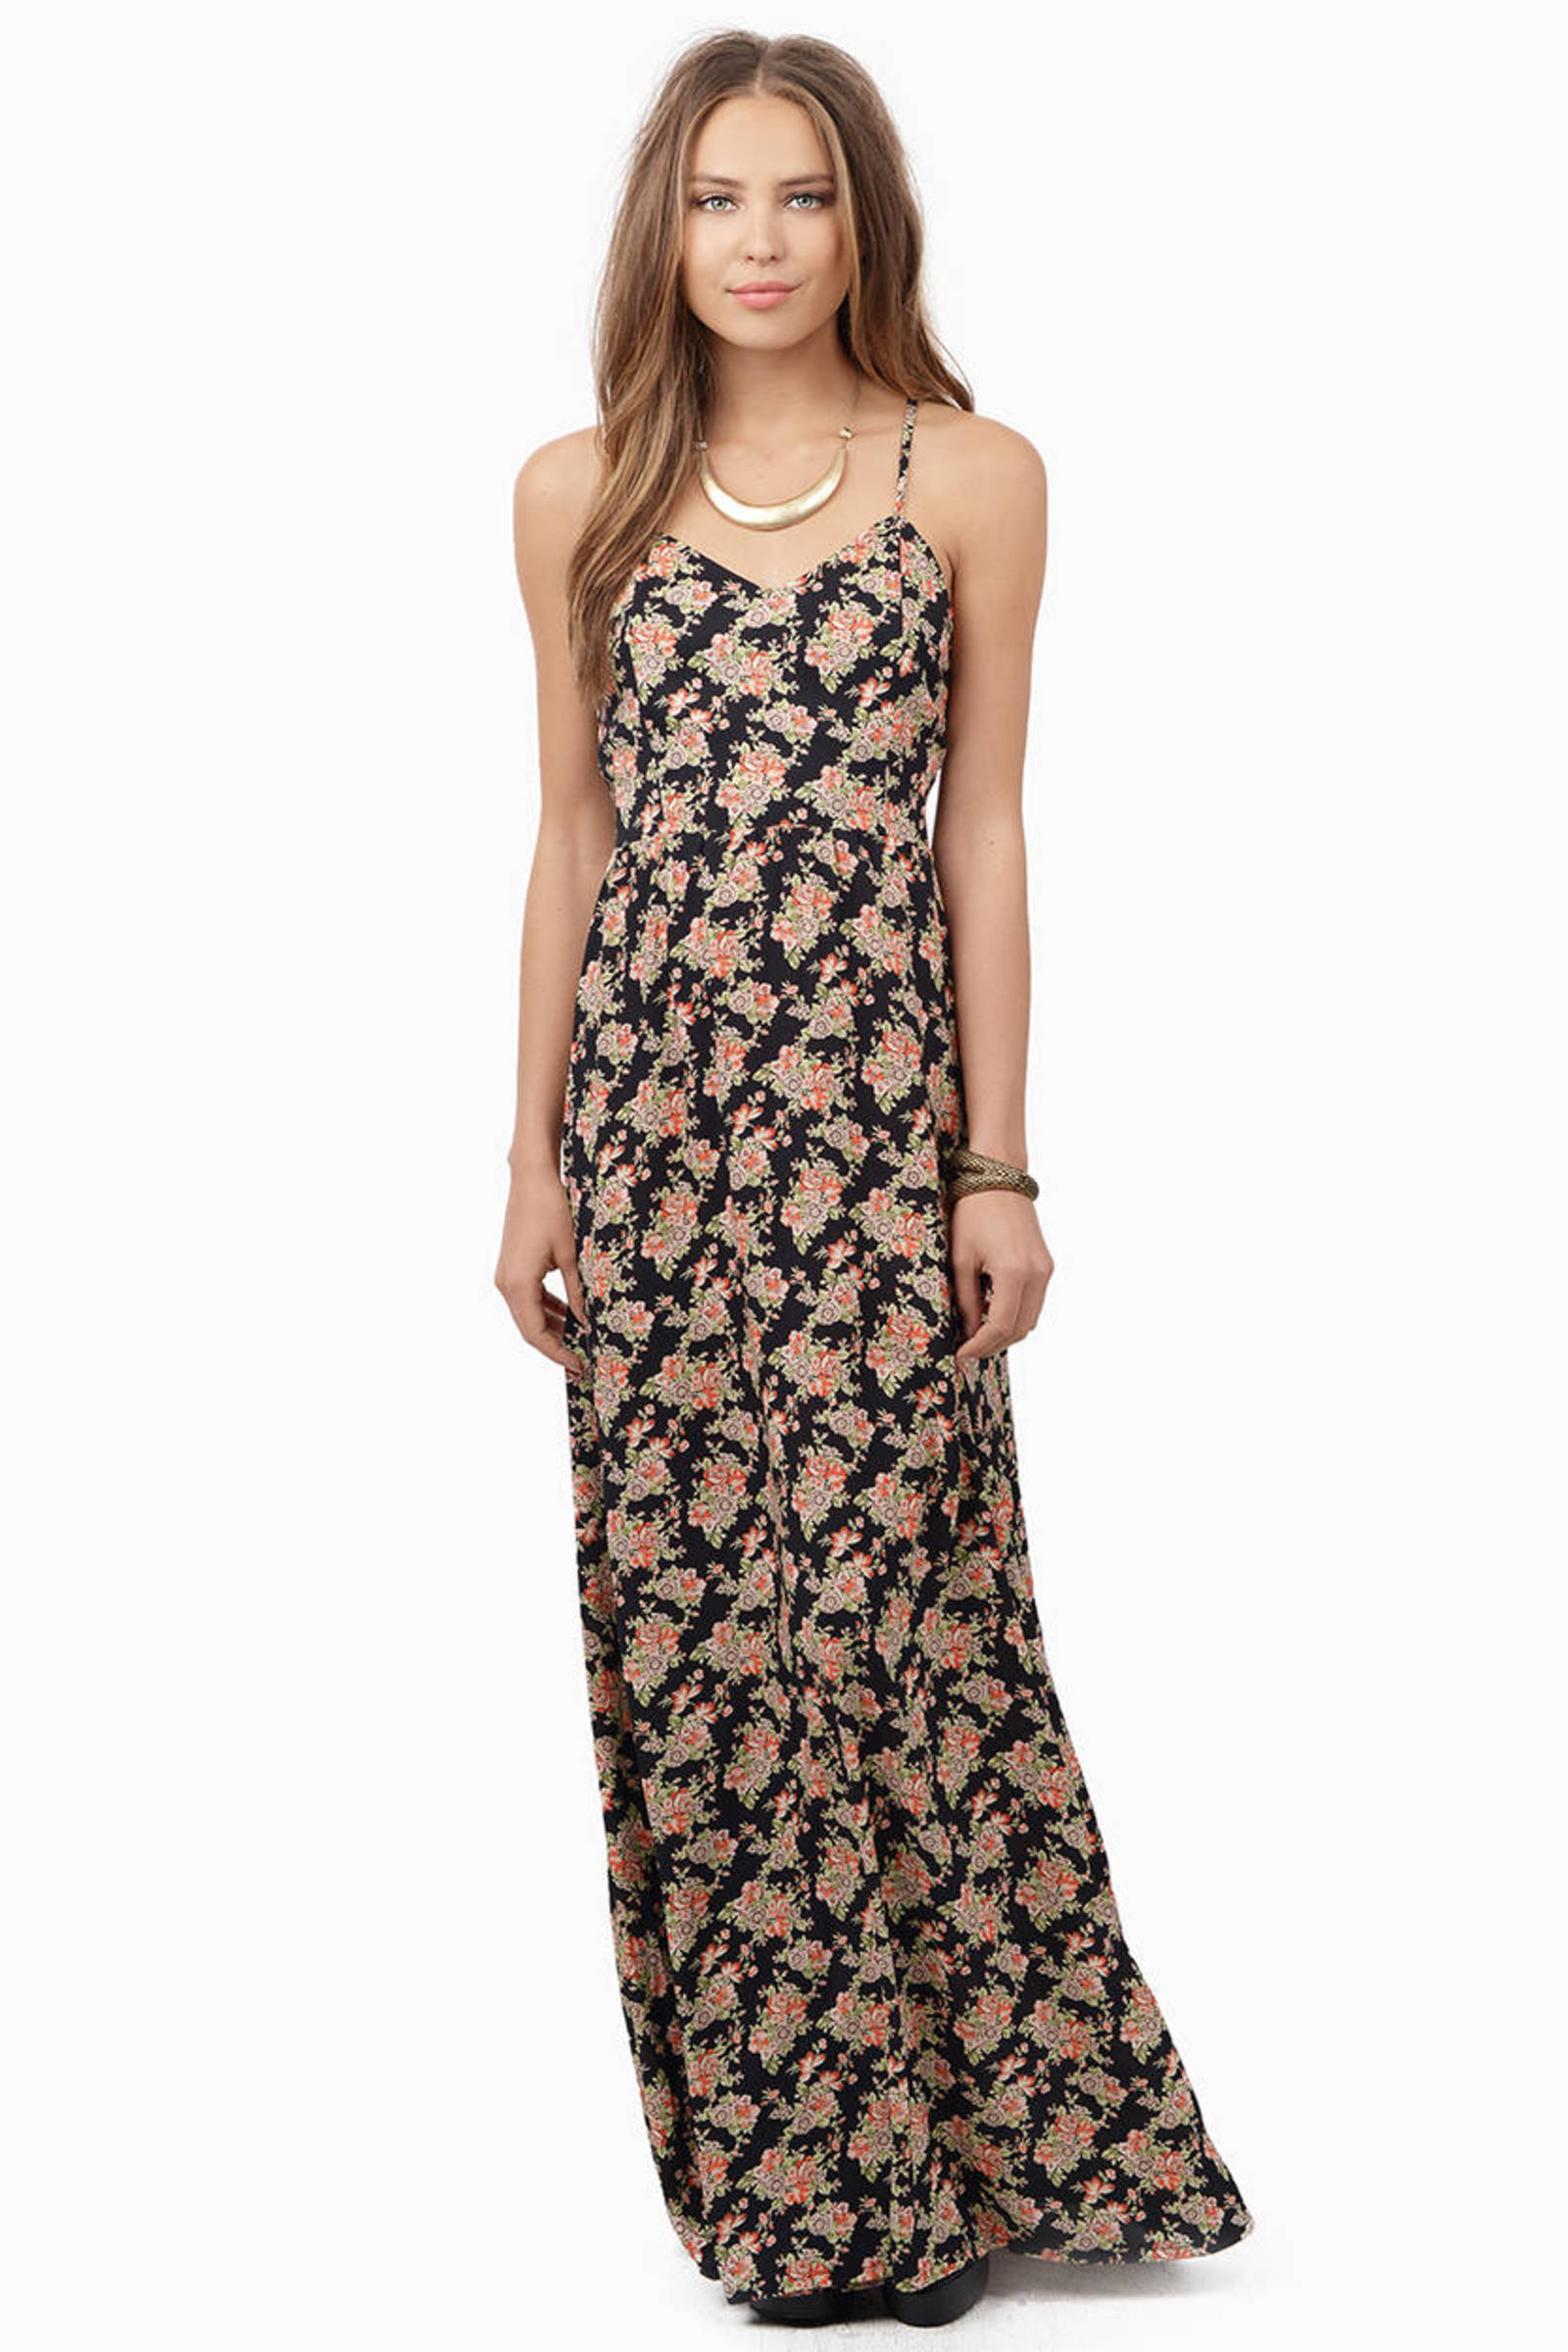 Trendy Navy Floral Maxi Dress Floral Print Dress 1100